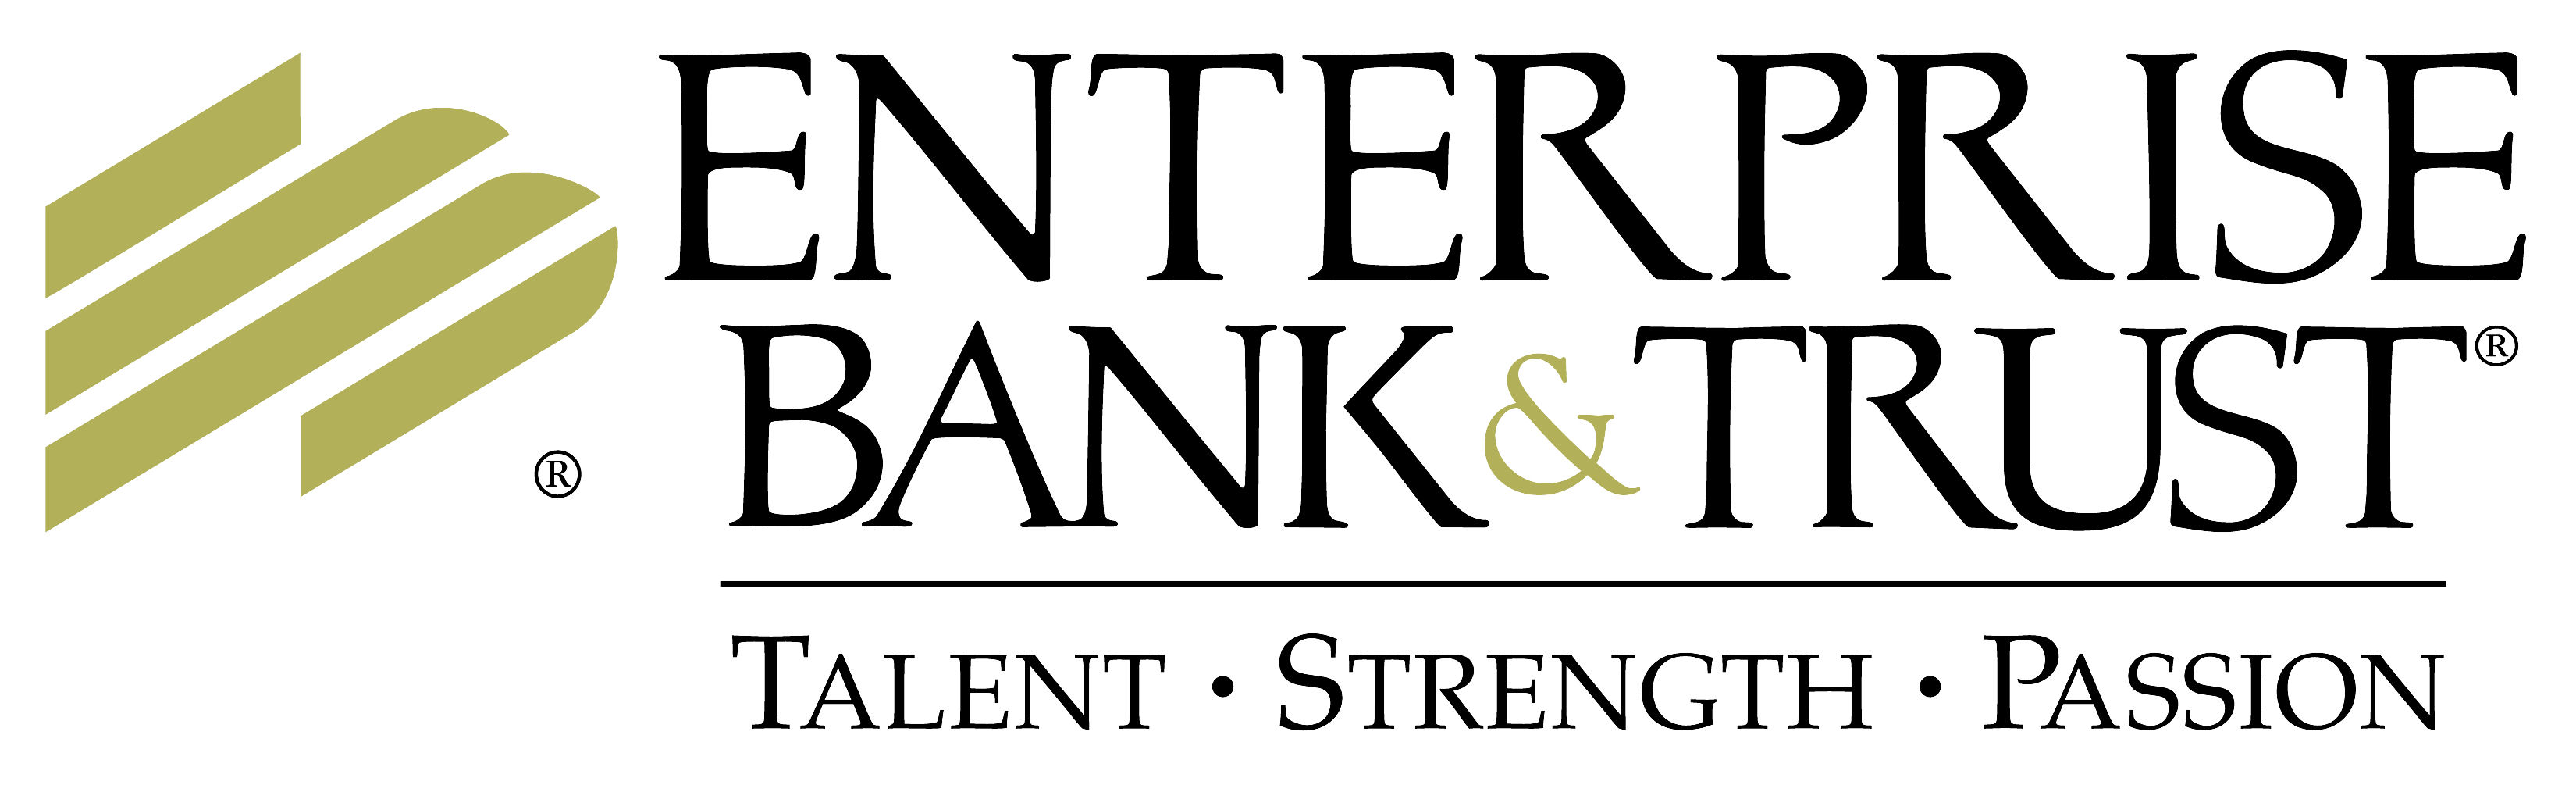 Enterprise-Bank-color-logo-1(1).jpg